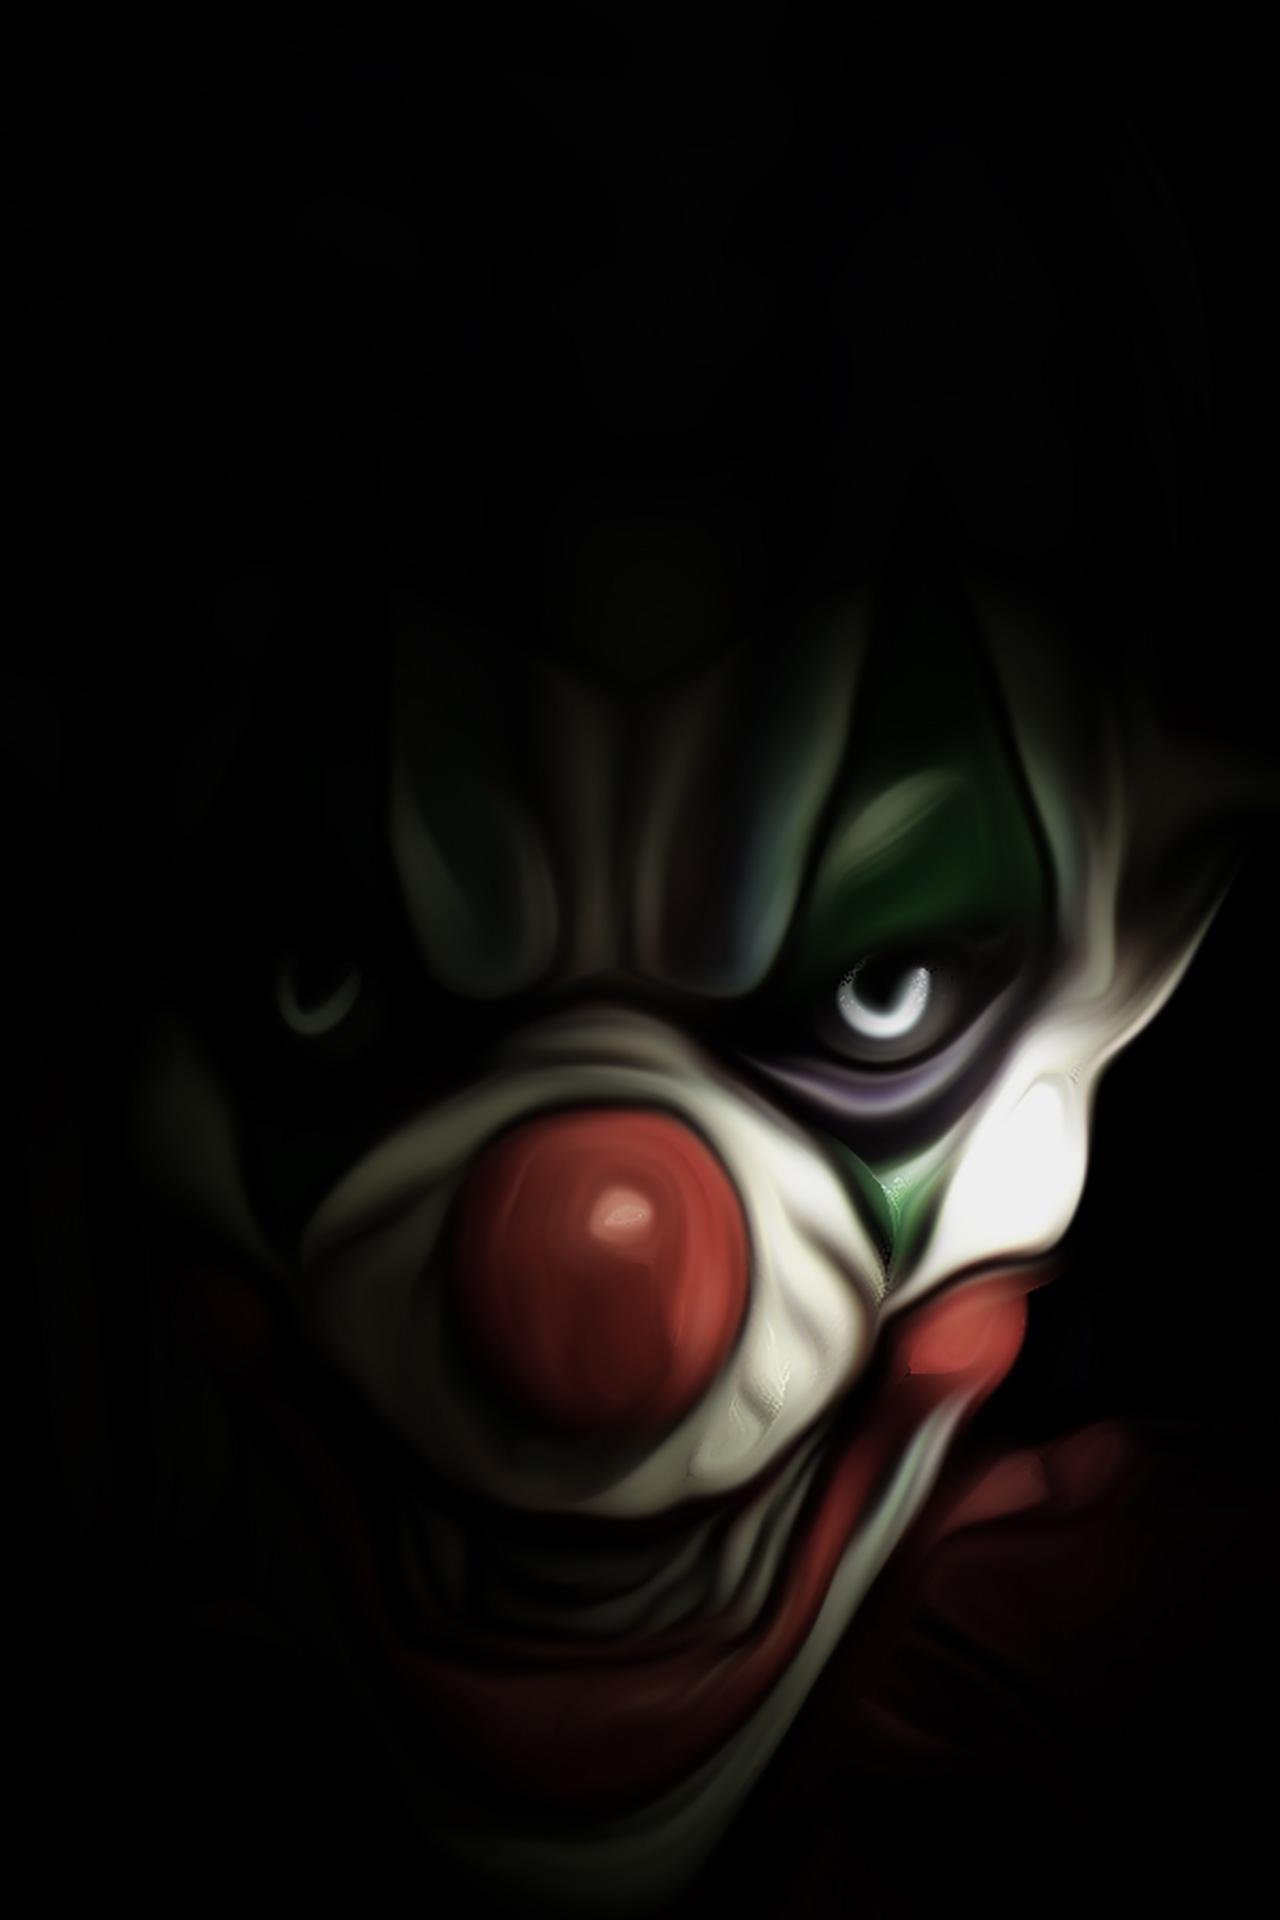 Killer Clown Live Wallpaper For Android Apk Download